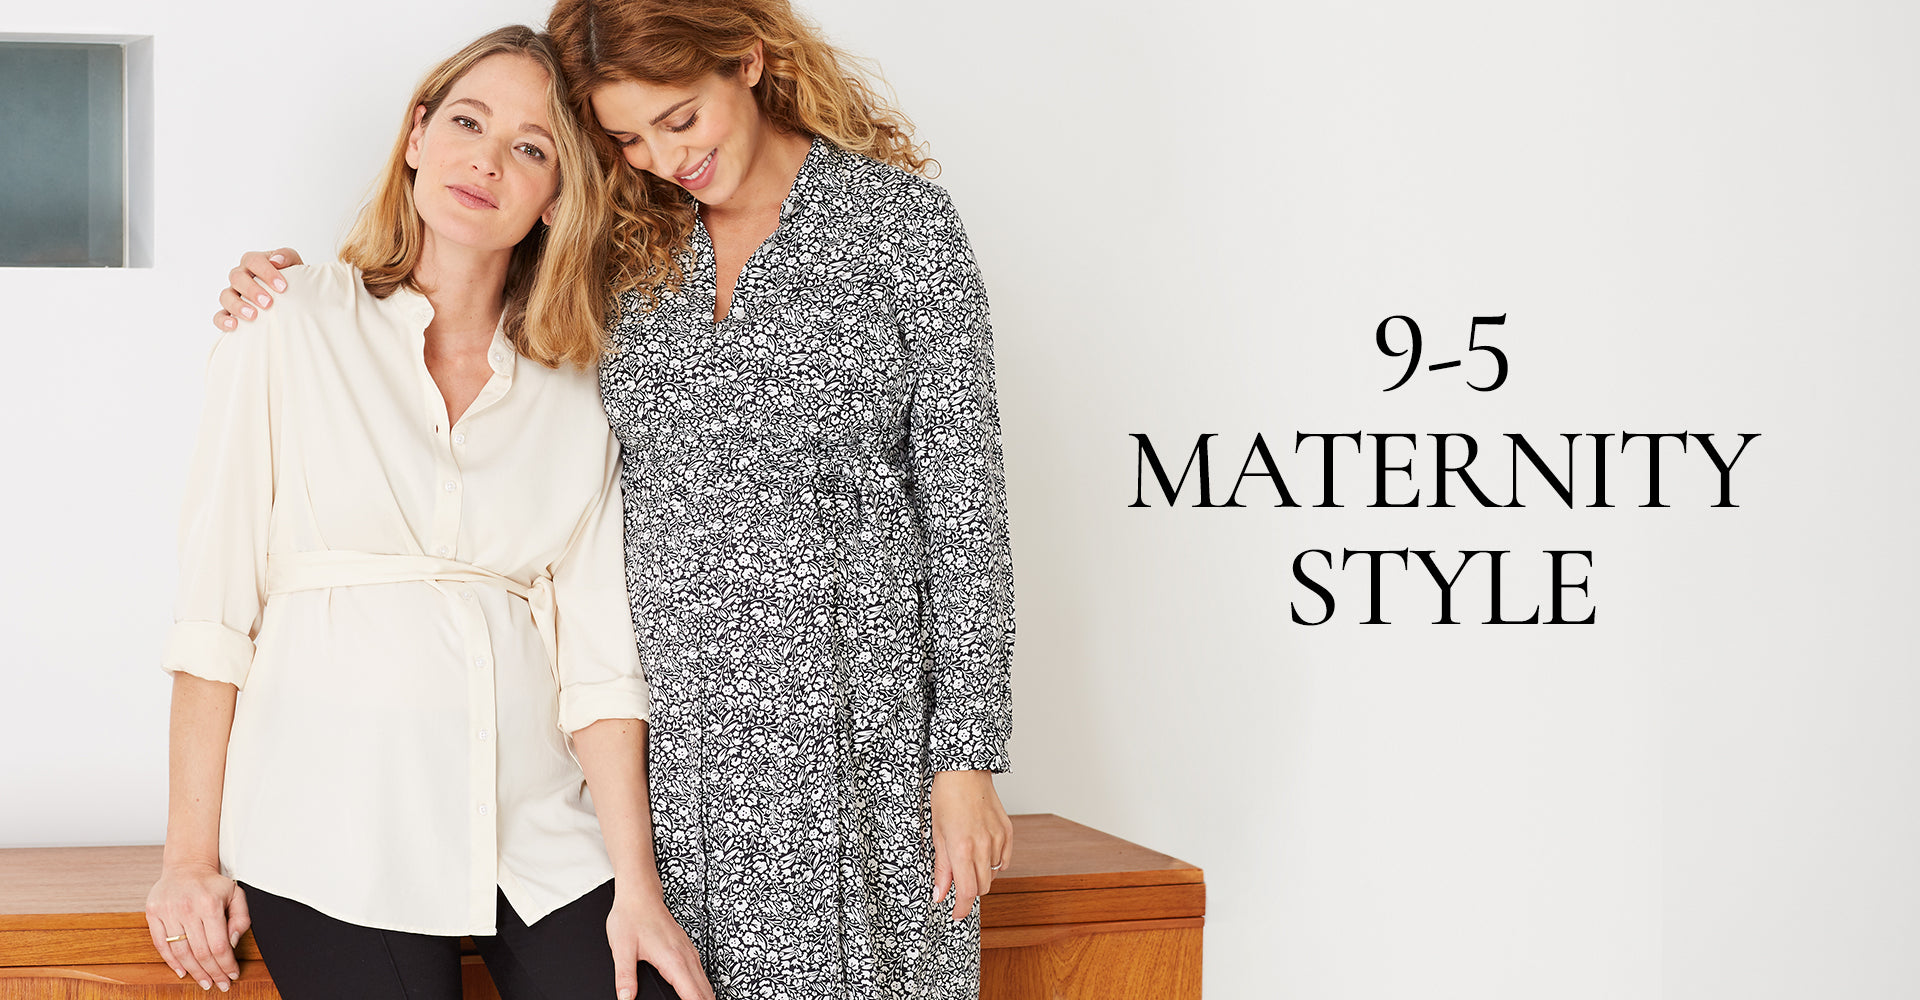 The 9-5 Maternity Style